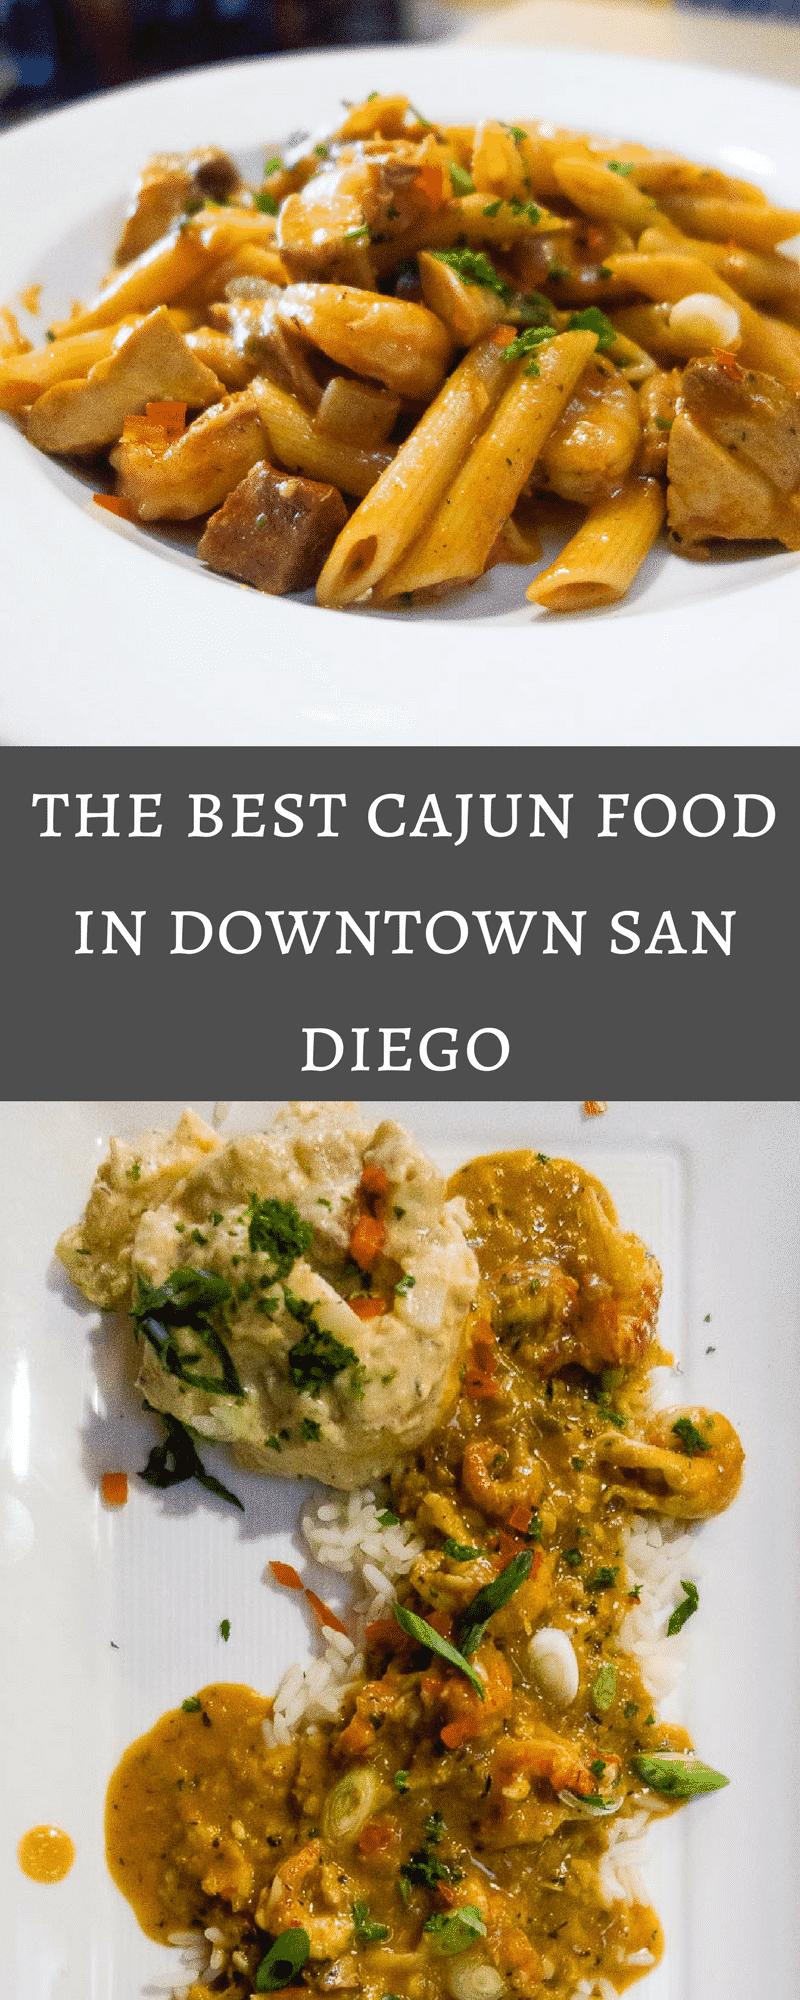 Where to find the best Cajun food in downtown San Diego. The most amazing gumbo, jambalaya, etouffee, and alligator sausage in San Diego!san diego restaurants | best restaurants san Diego | cajun food san diego | cajun restaurants san diego | new Orleans food | best gumbo in san diego | bud and rob's louisiana bistro | new orleans eats in san diego | best creole food in san diego